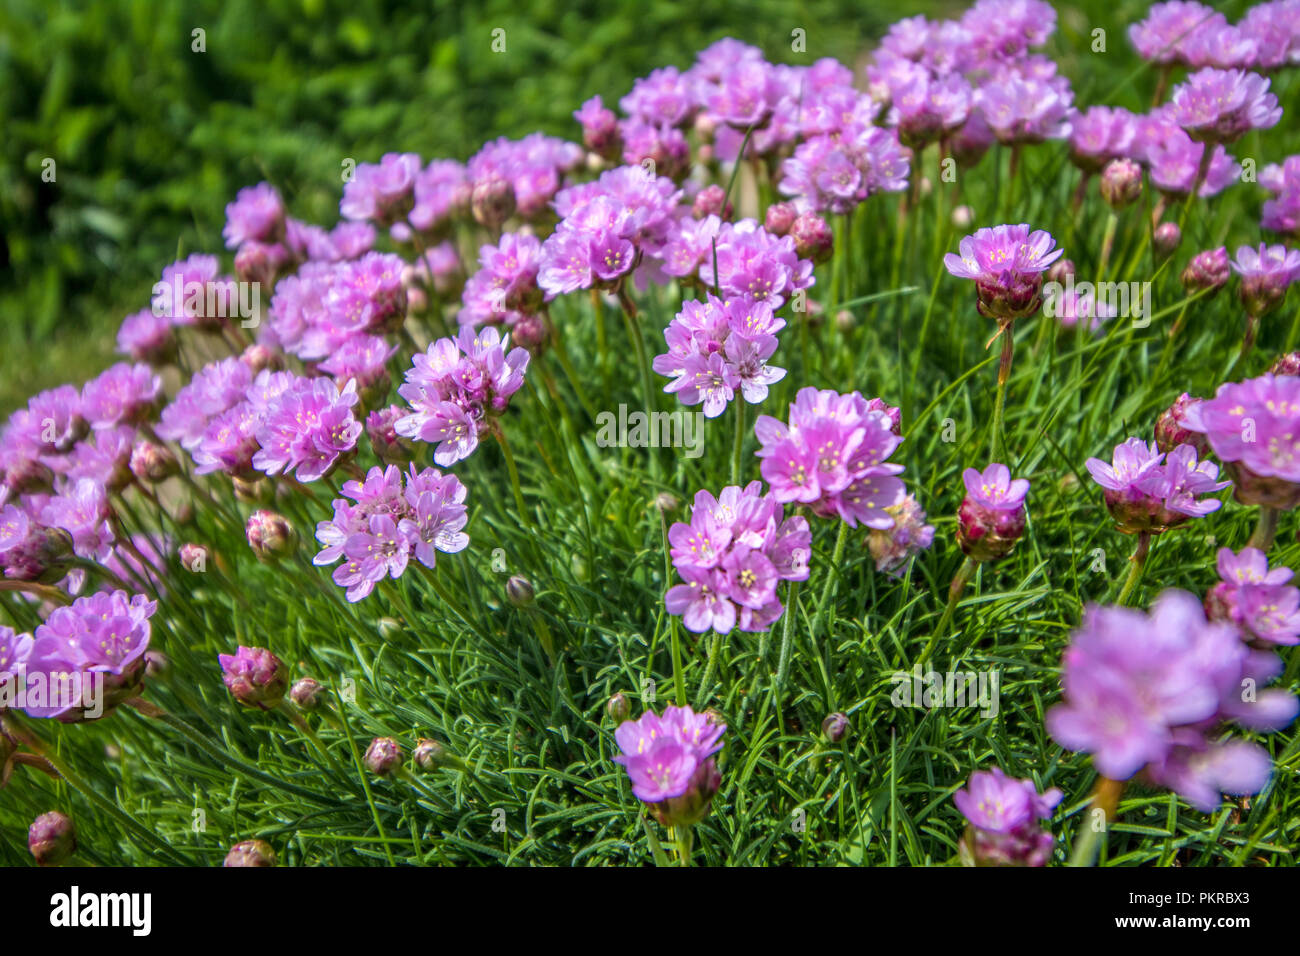 Sea Pink Thrift Flowers Growing Stock Photos Sea Pink Thrift